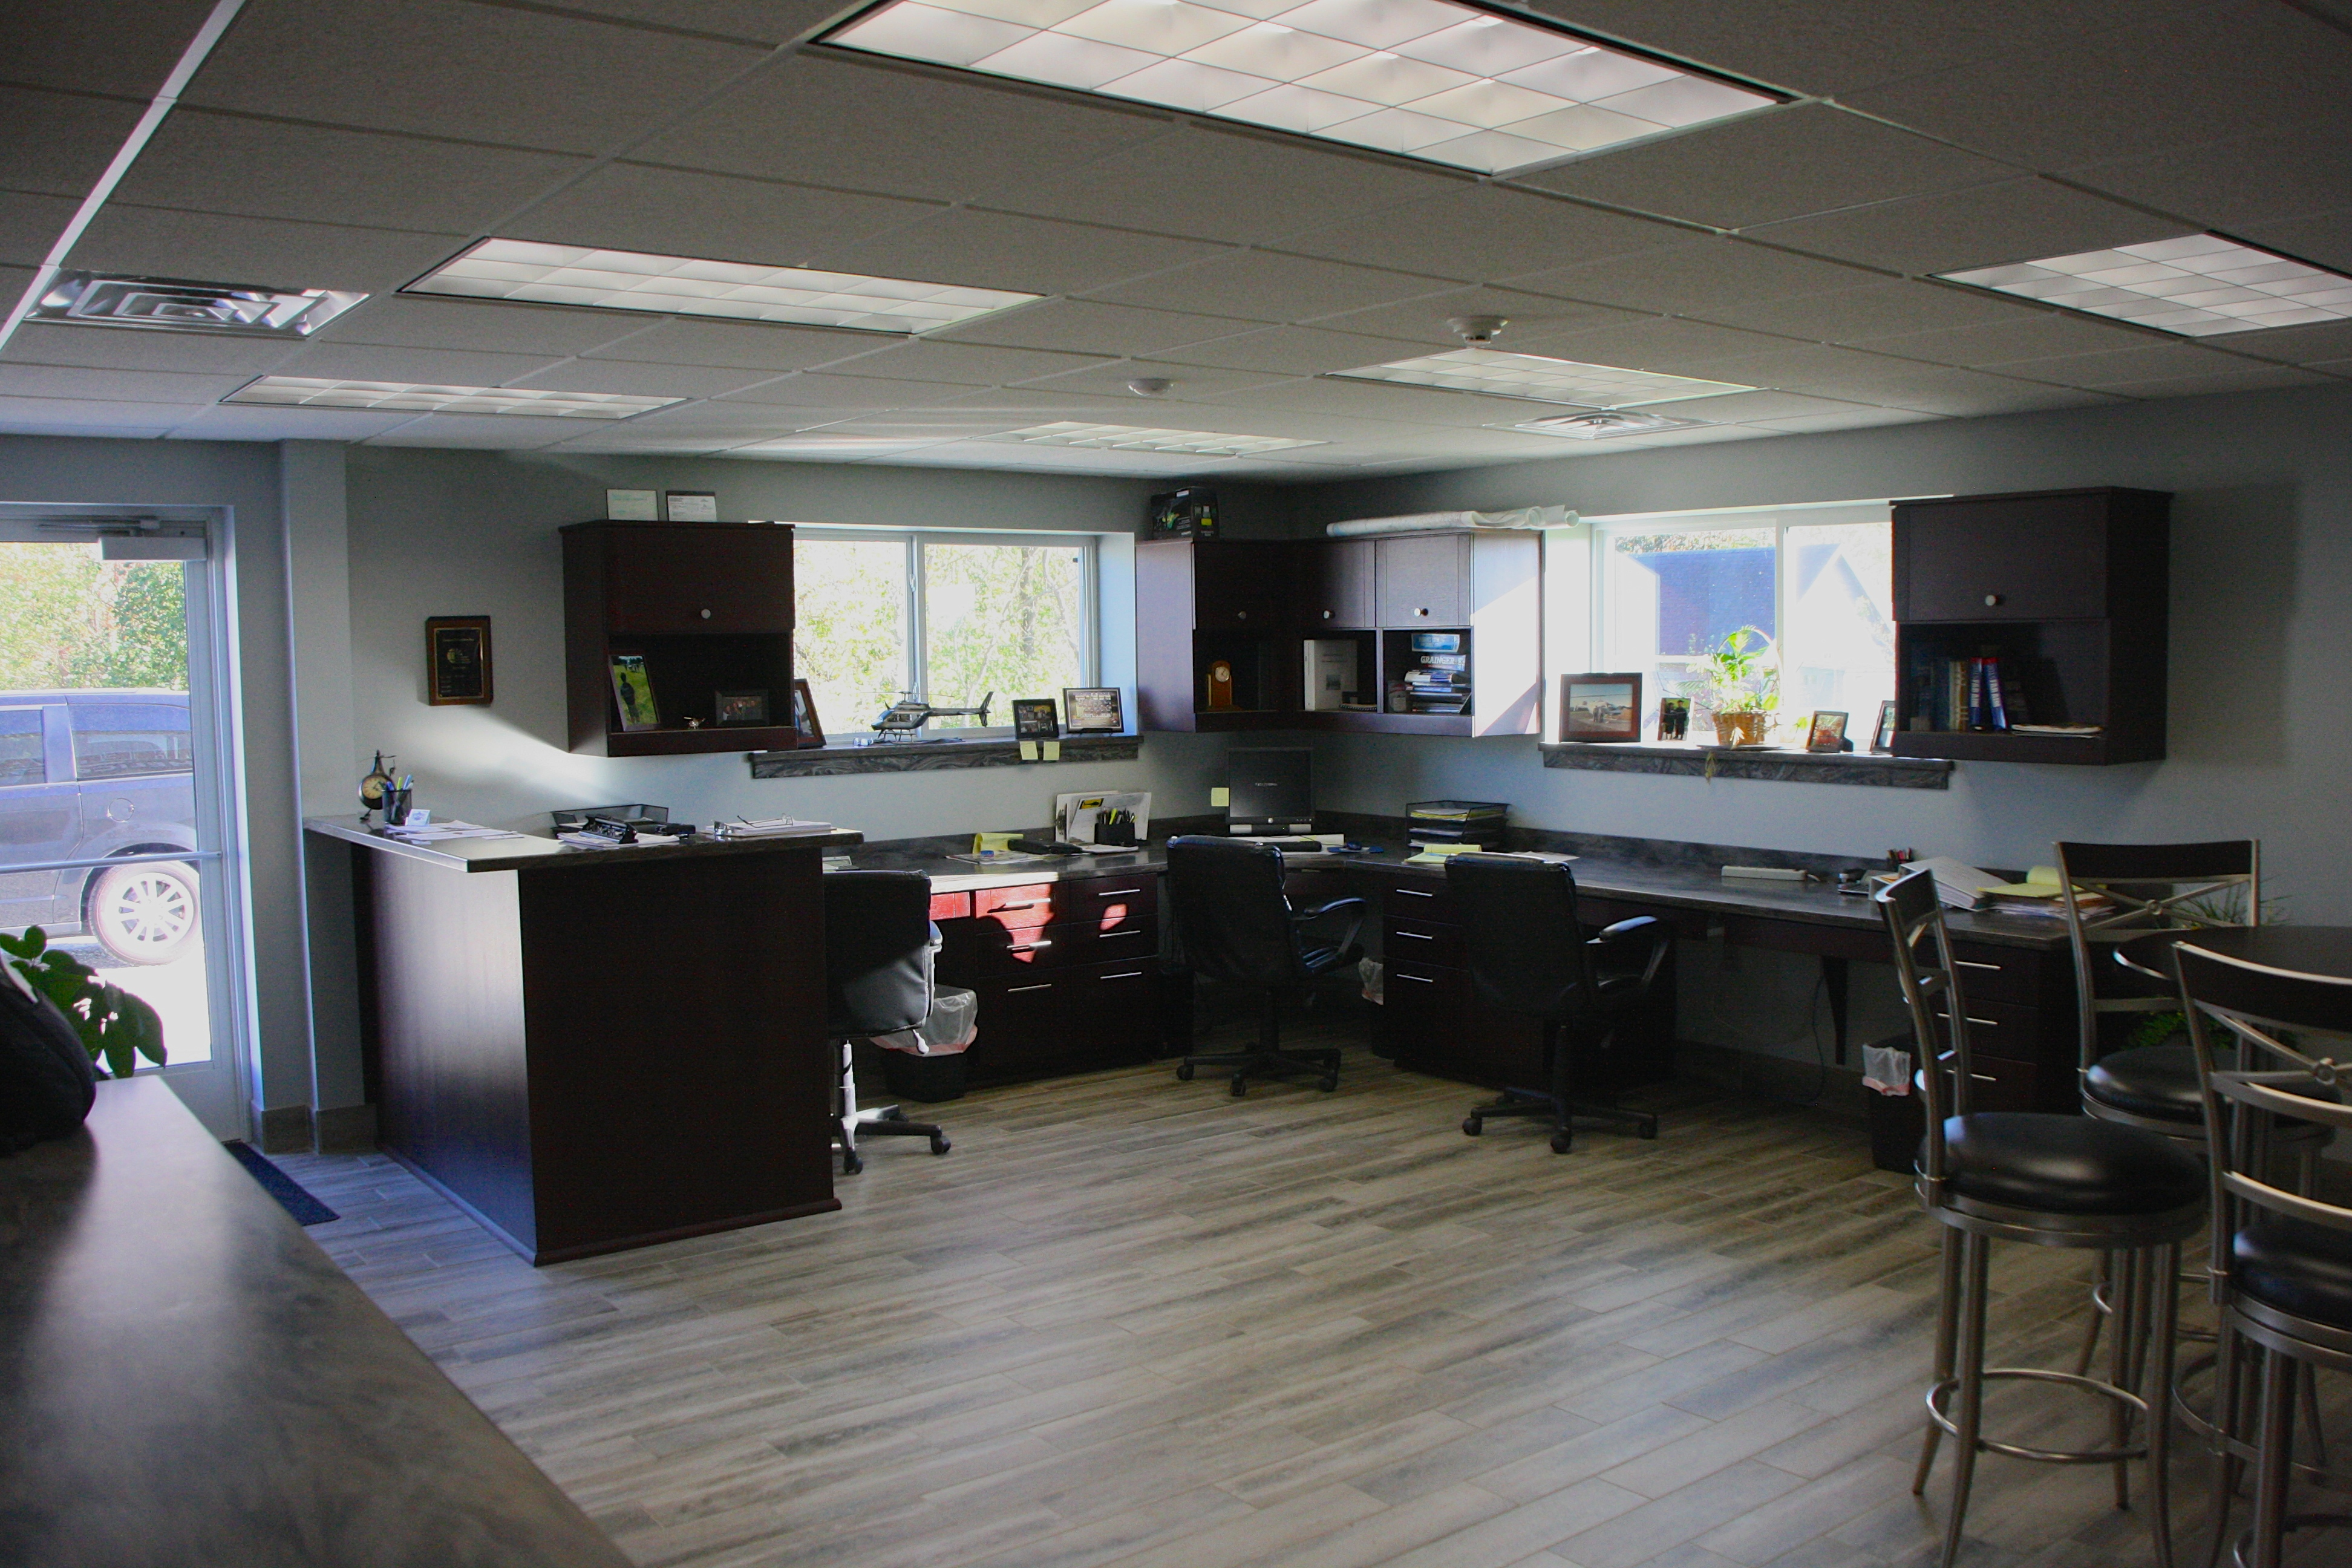 Commercial Helicoptor Hangar With Interior Office